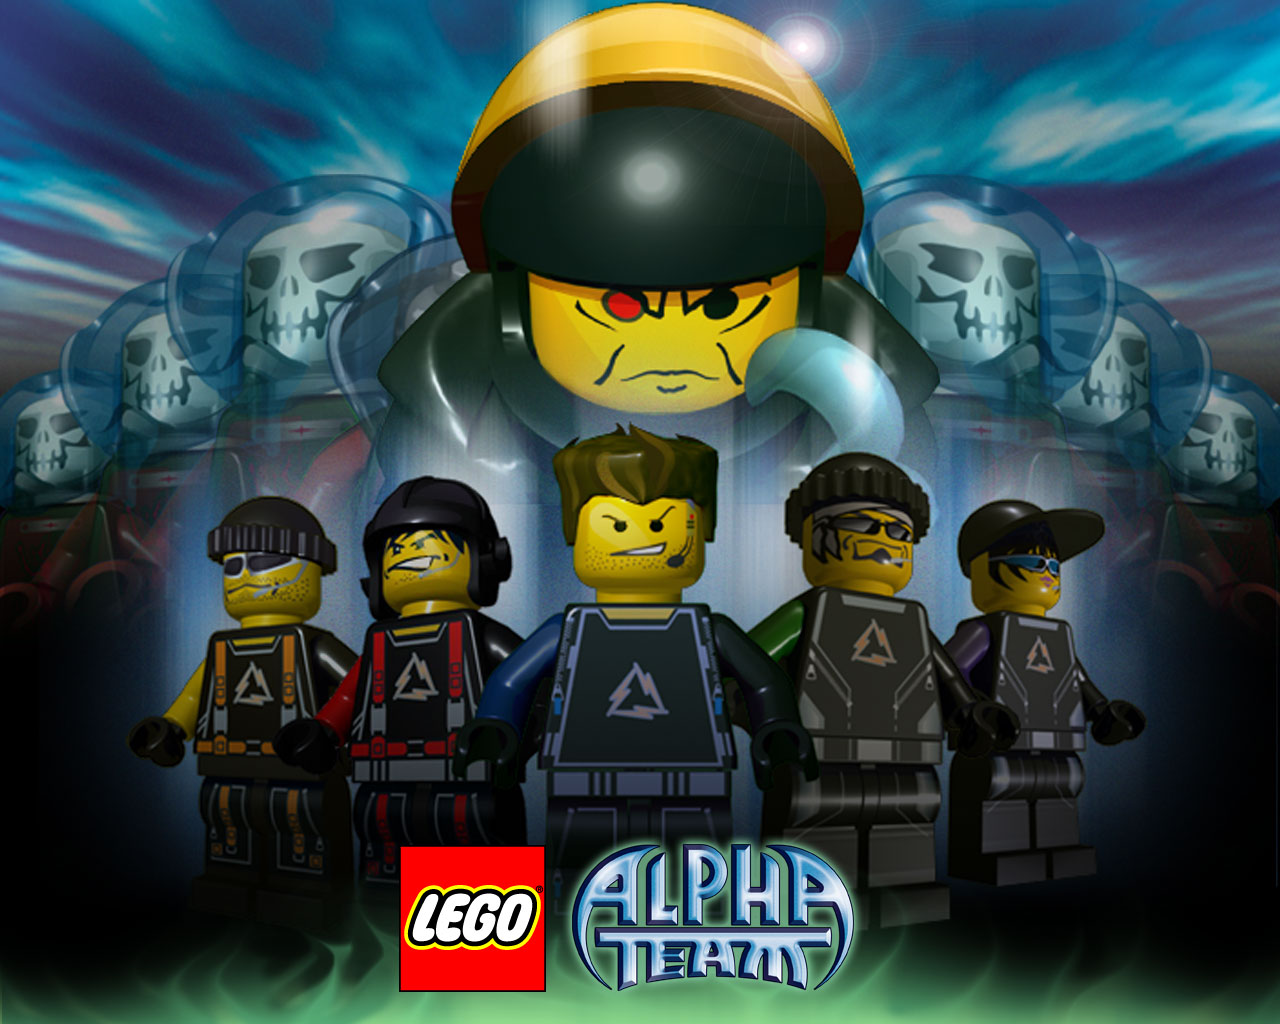 http://img1.wikia.nocookie.net/__cb20110924141918/lego/images/4/42/Alpha_Team_poster.jpg